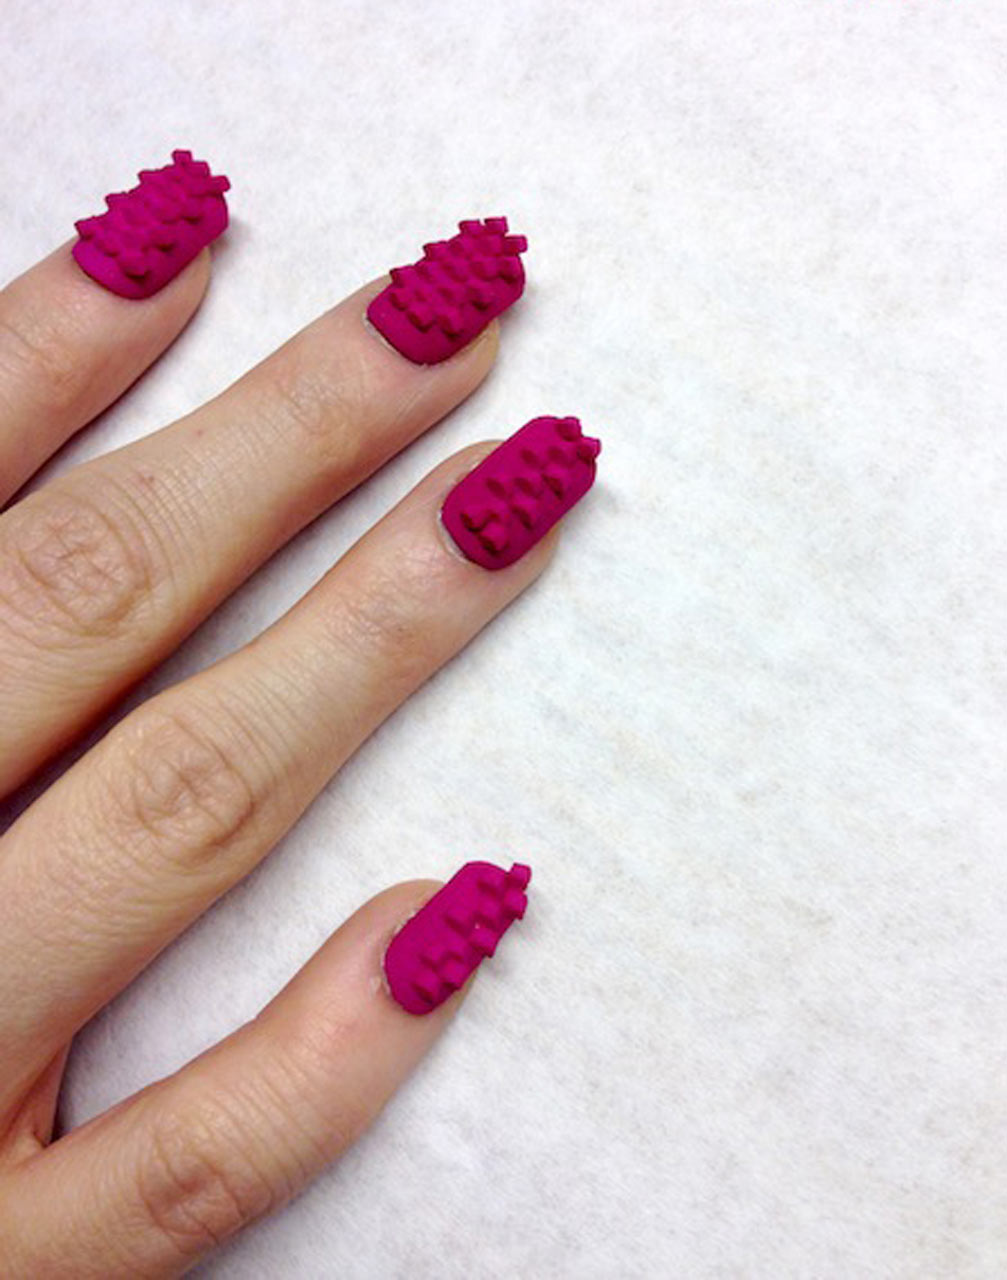 TheLaserGirls-3D-Printed-Nails-4-Sour-Razz